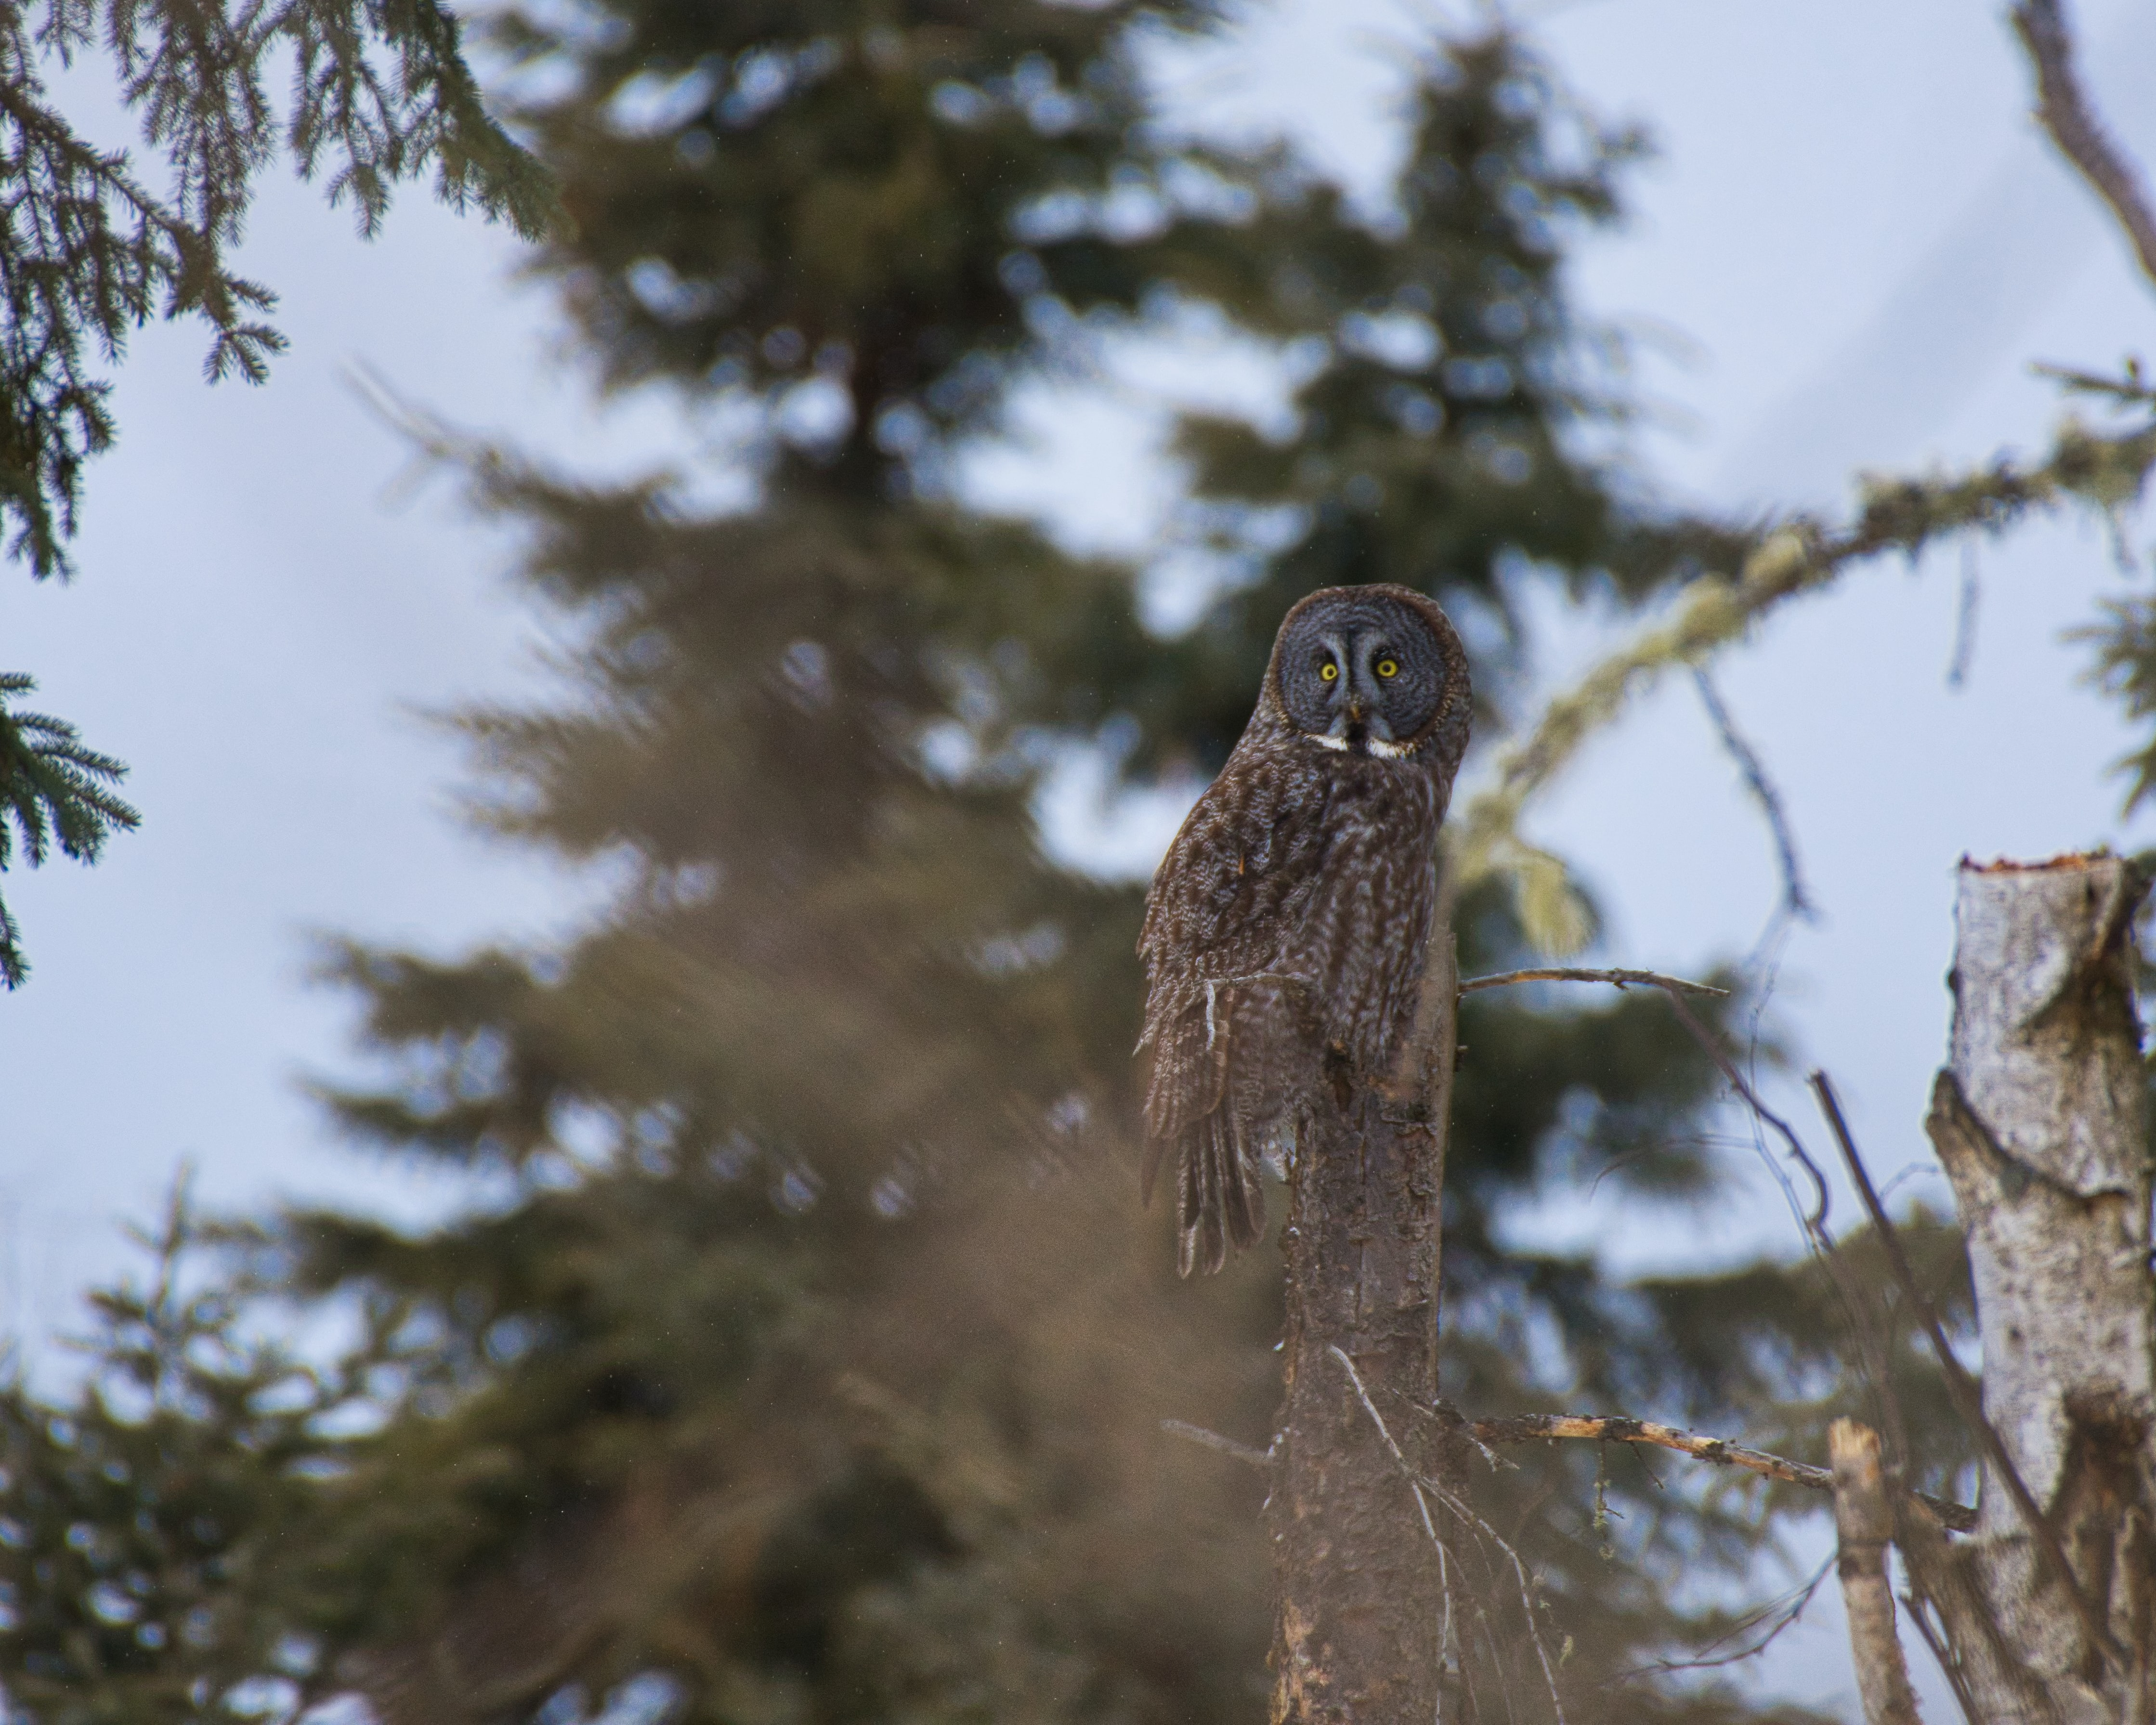 brown owl resting on tree branch